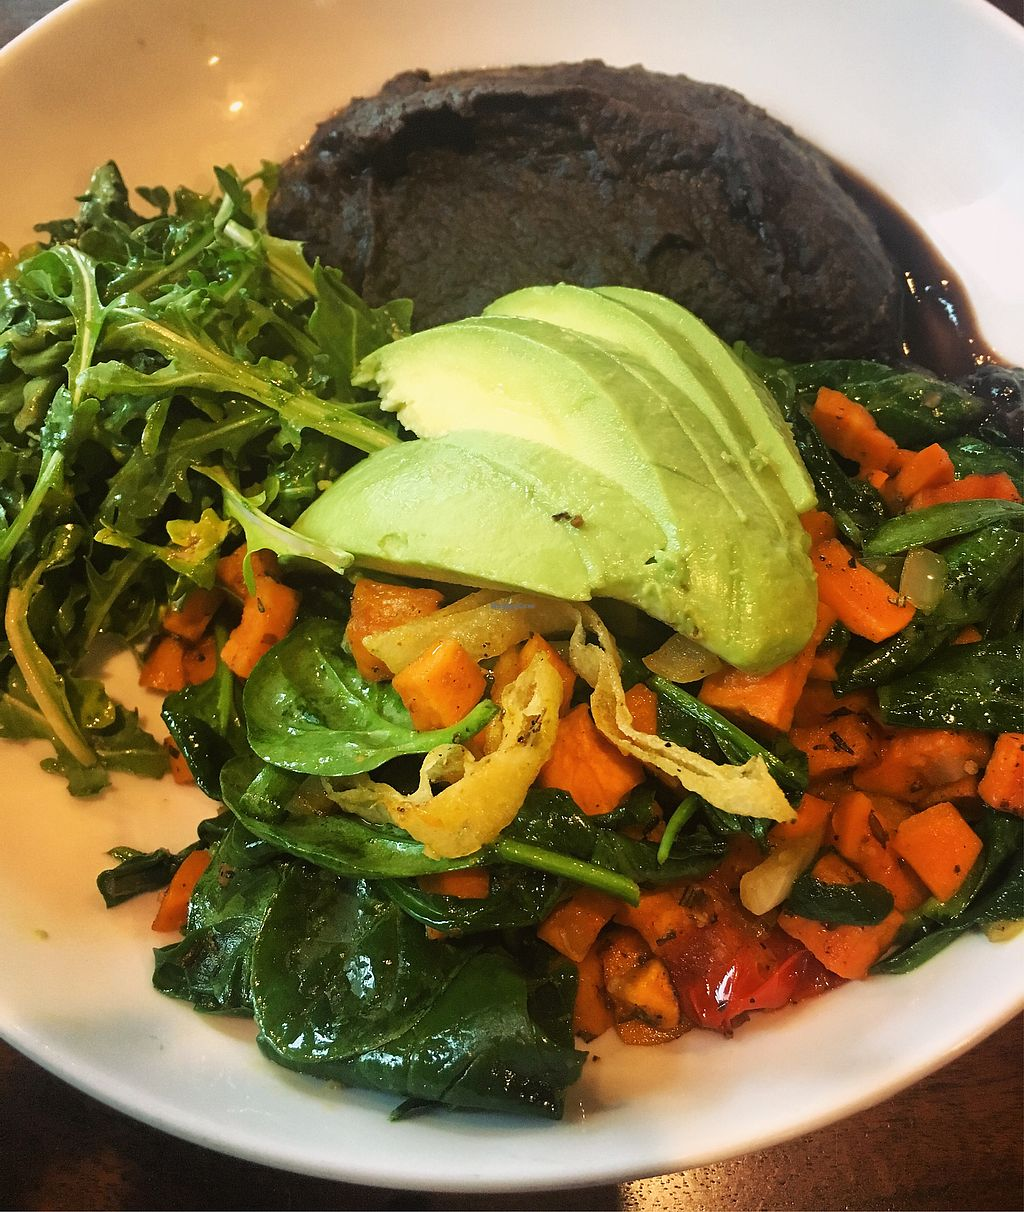 """Photo of 5 Points Local  by <a href=""""/members/profile/StephanieWilson"""">StephanieWilson</a> <br/>Vegan veggie breakfast bowl  <br/> March 24, 2018  - <a href='/contact/abuse/image/84025/375438'>Report</a>"""